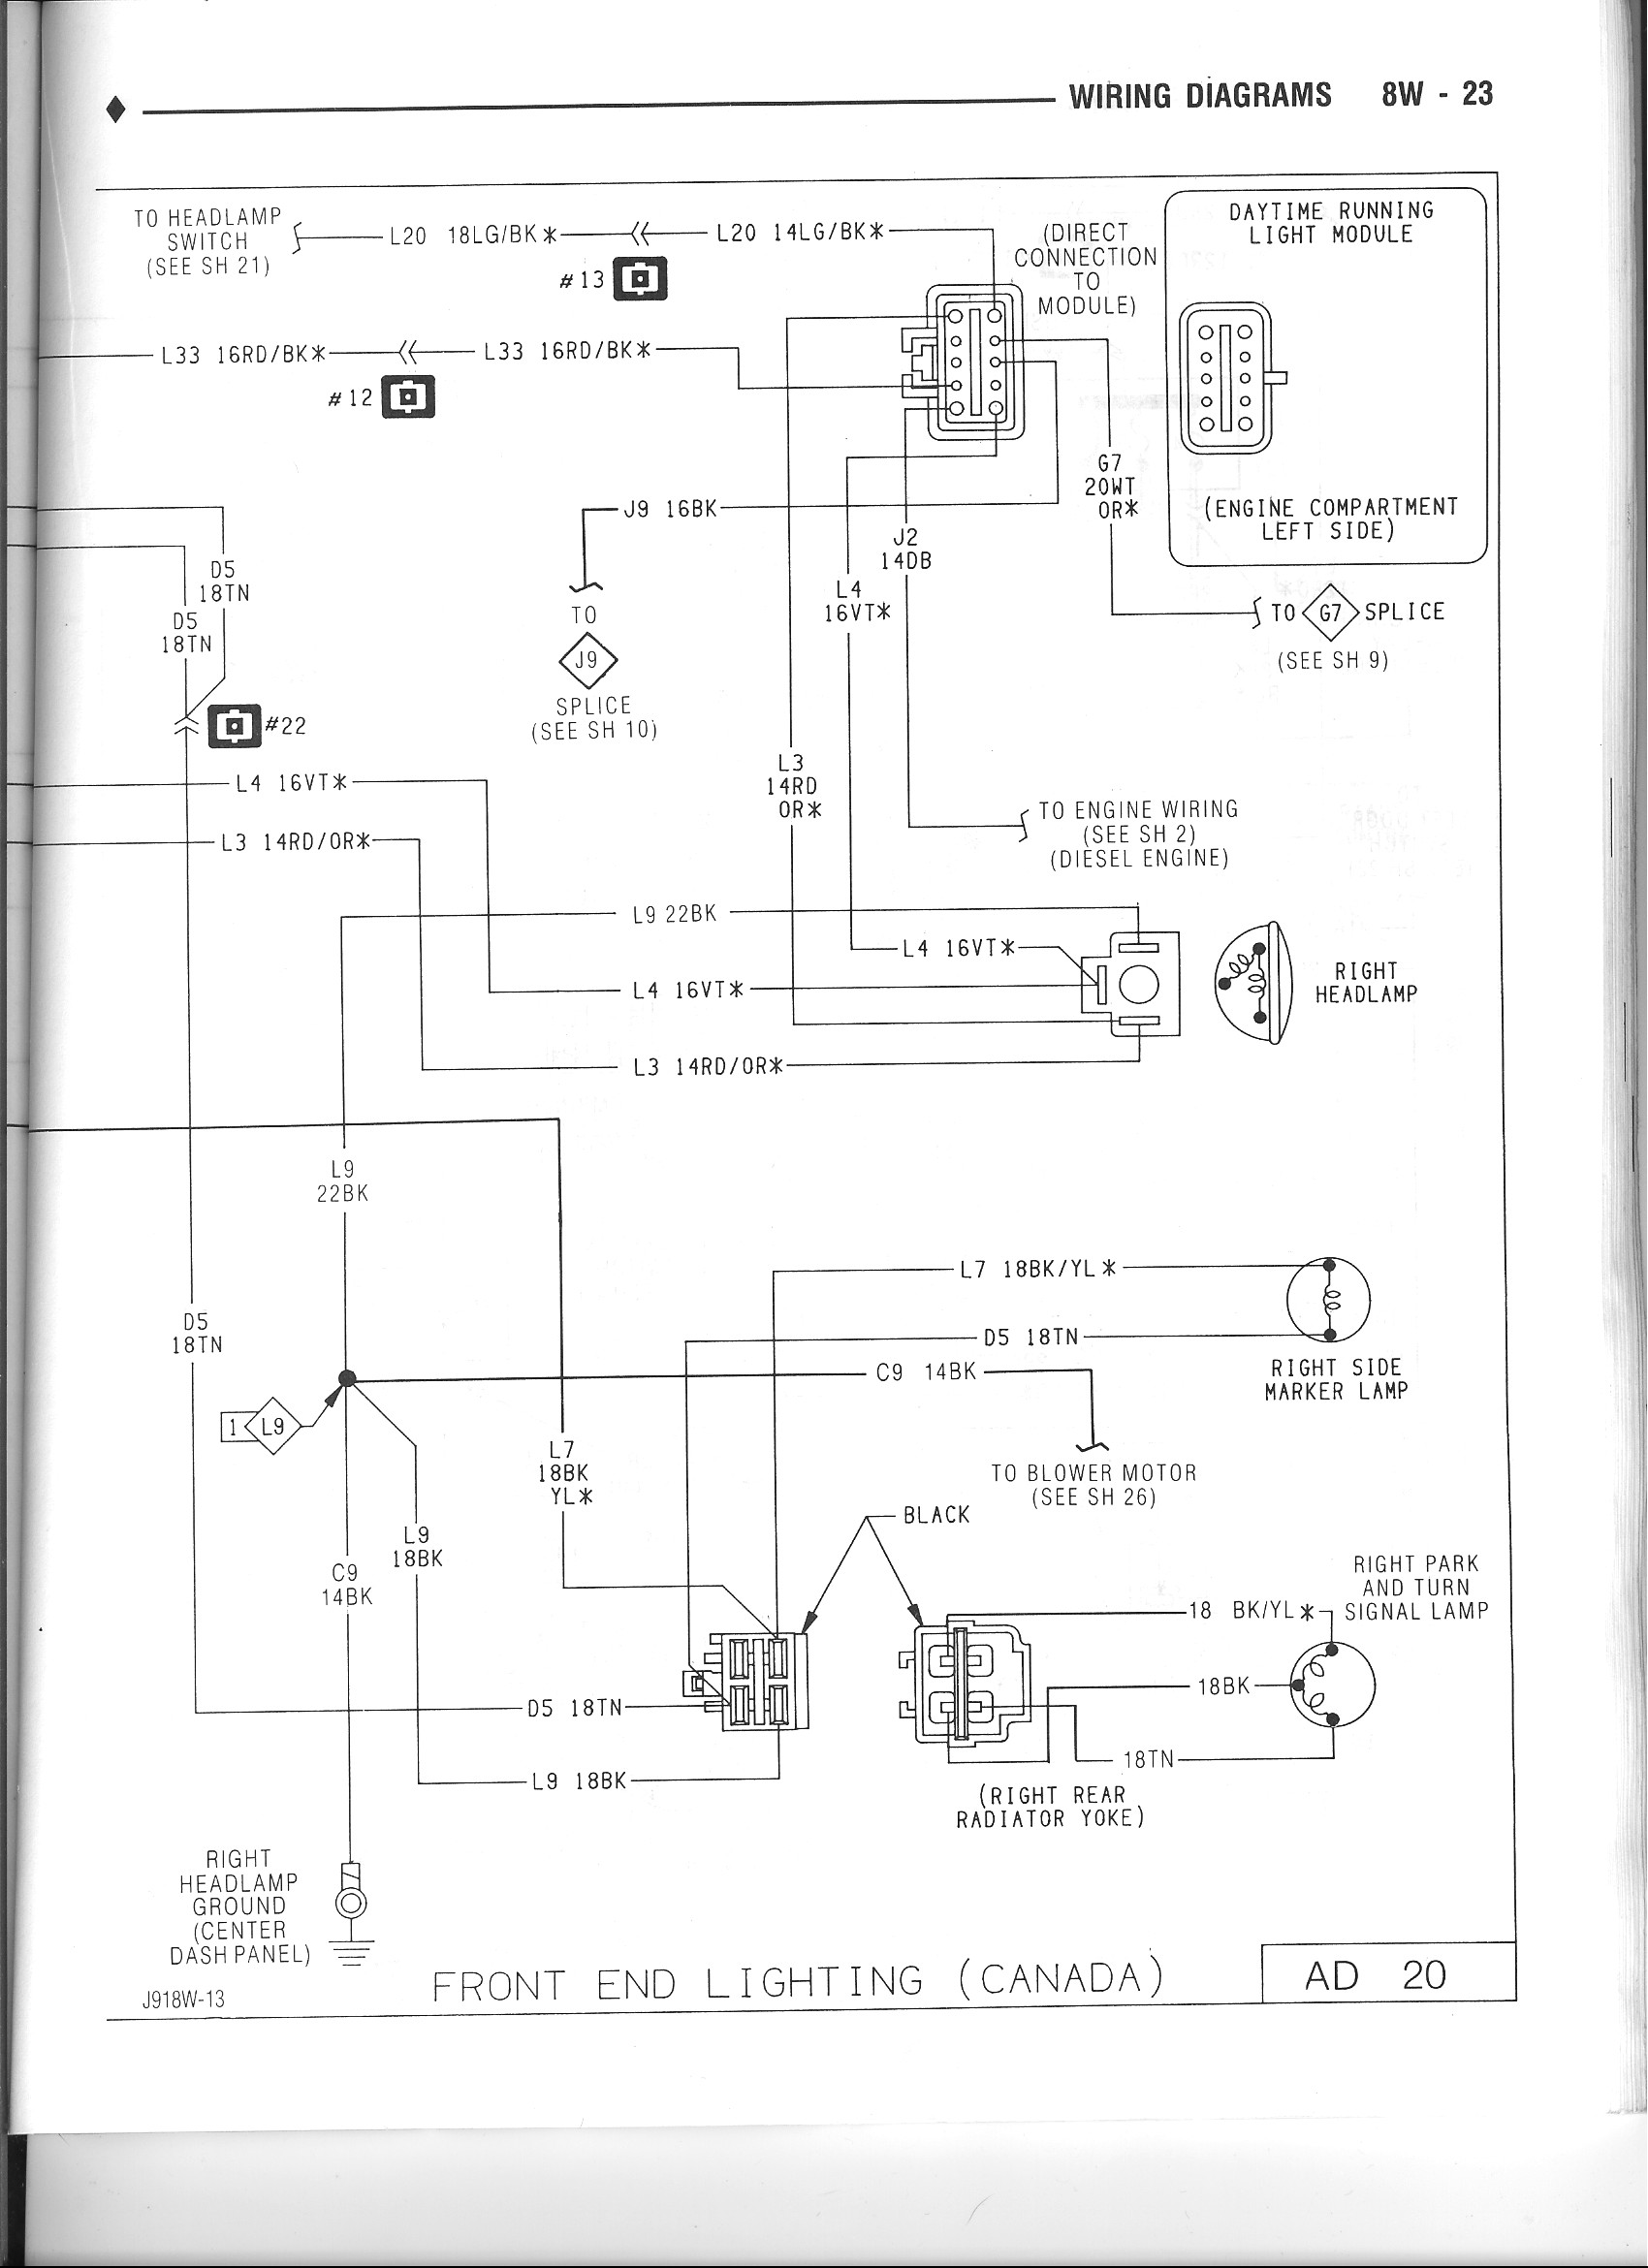 1991 Dodge Pickup Wiring Diagram Sbec Schematic 2019 Index Of Ctd 5 Diagrams